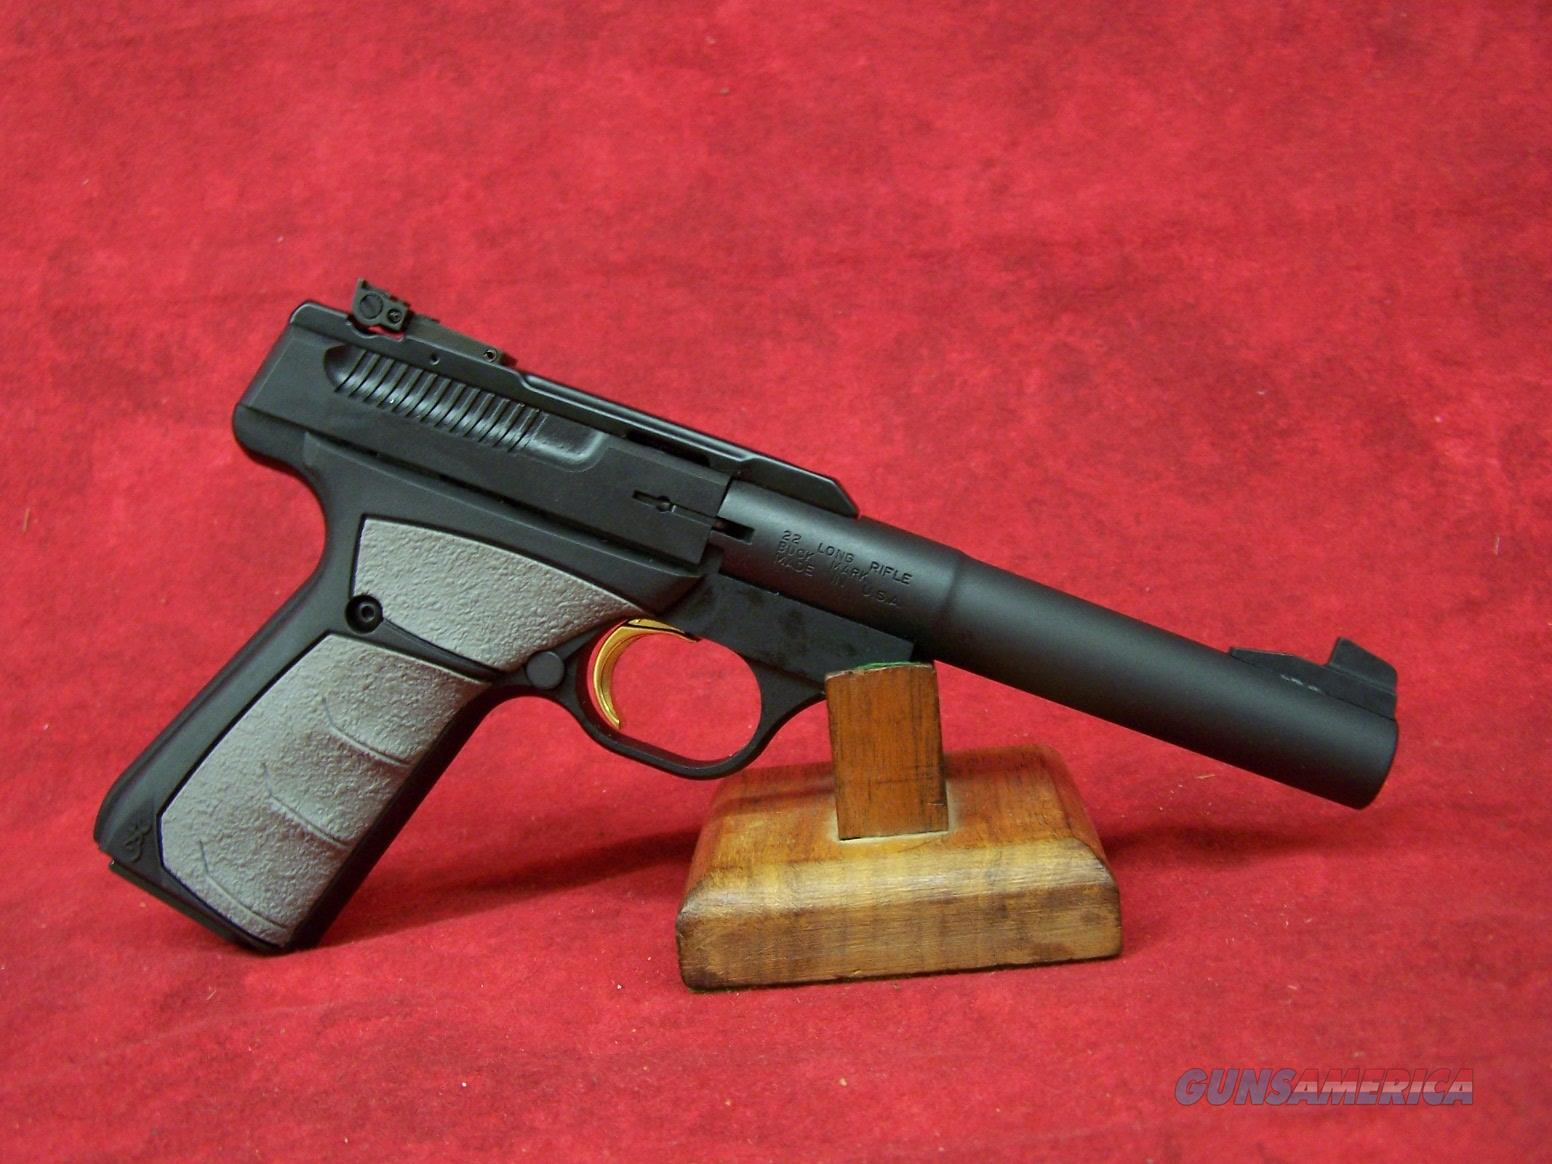 "Browning Buck Mark Camper UFX California Compliant 5 1/2"" Barrel (051482490)  Guns > Pistols > Browning Pistols > Buckmark"